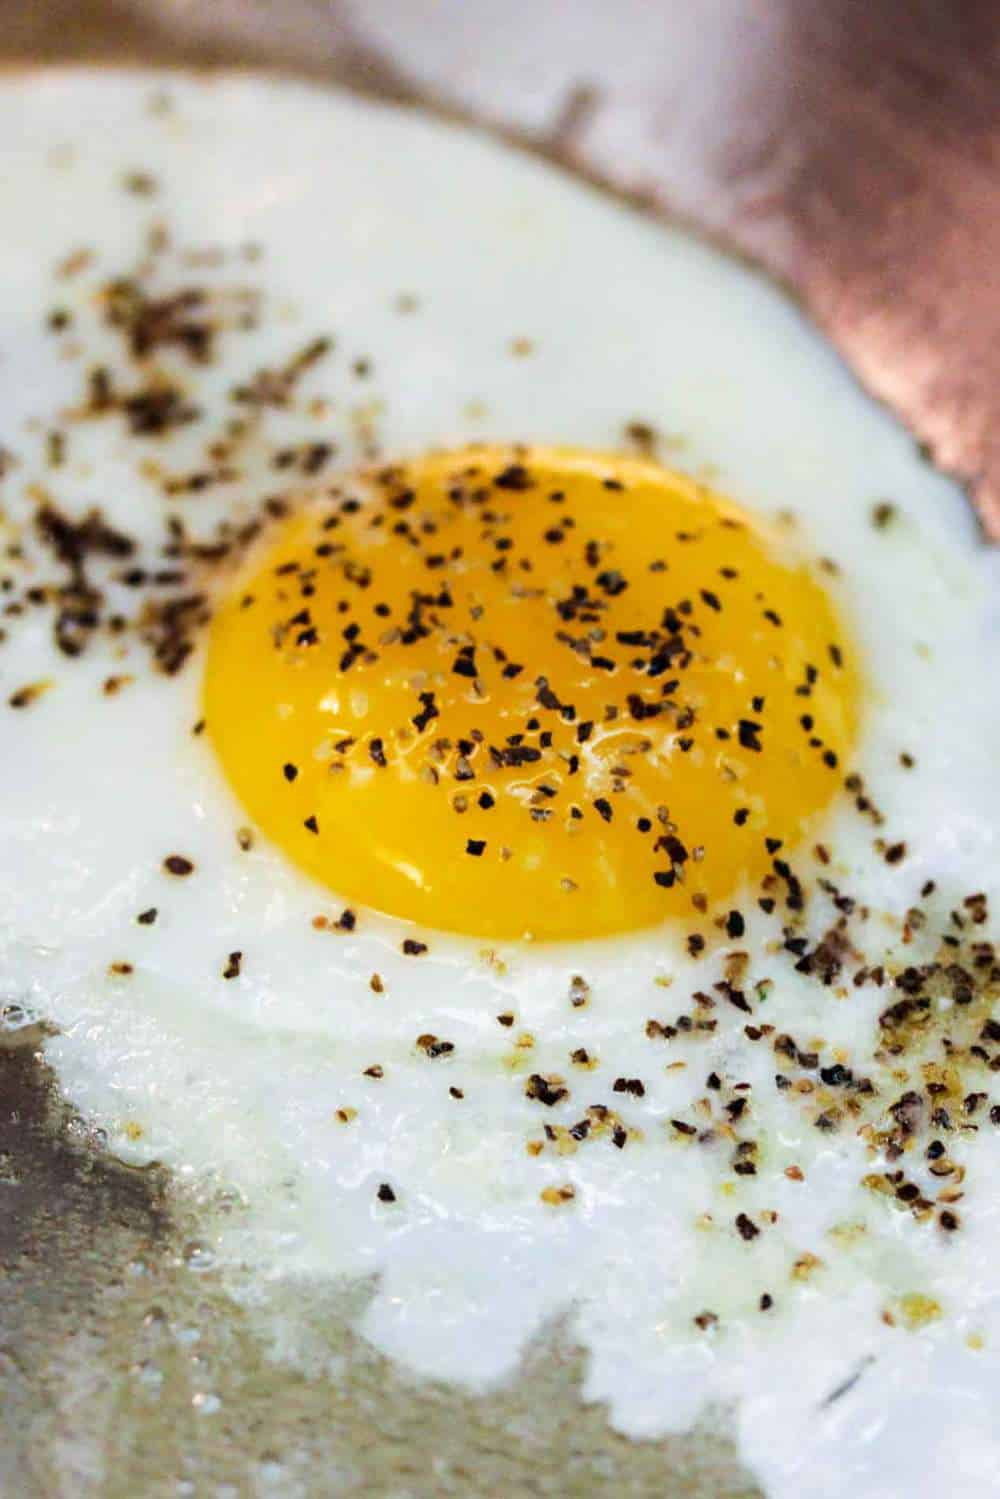 Fried egg, sunny side up for steak and eggs